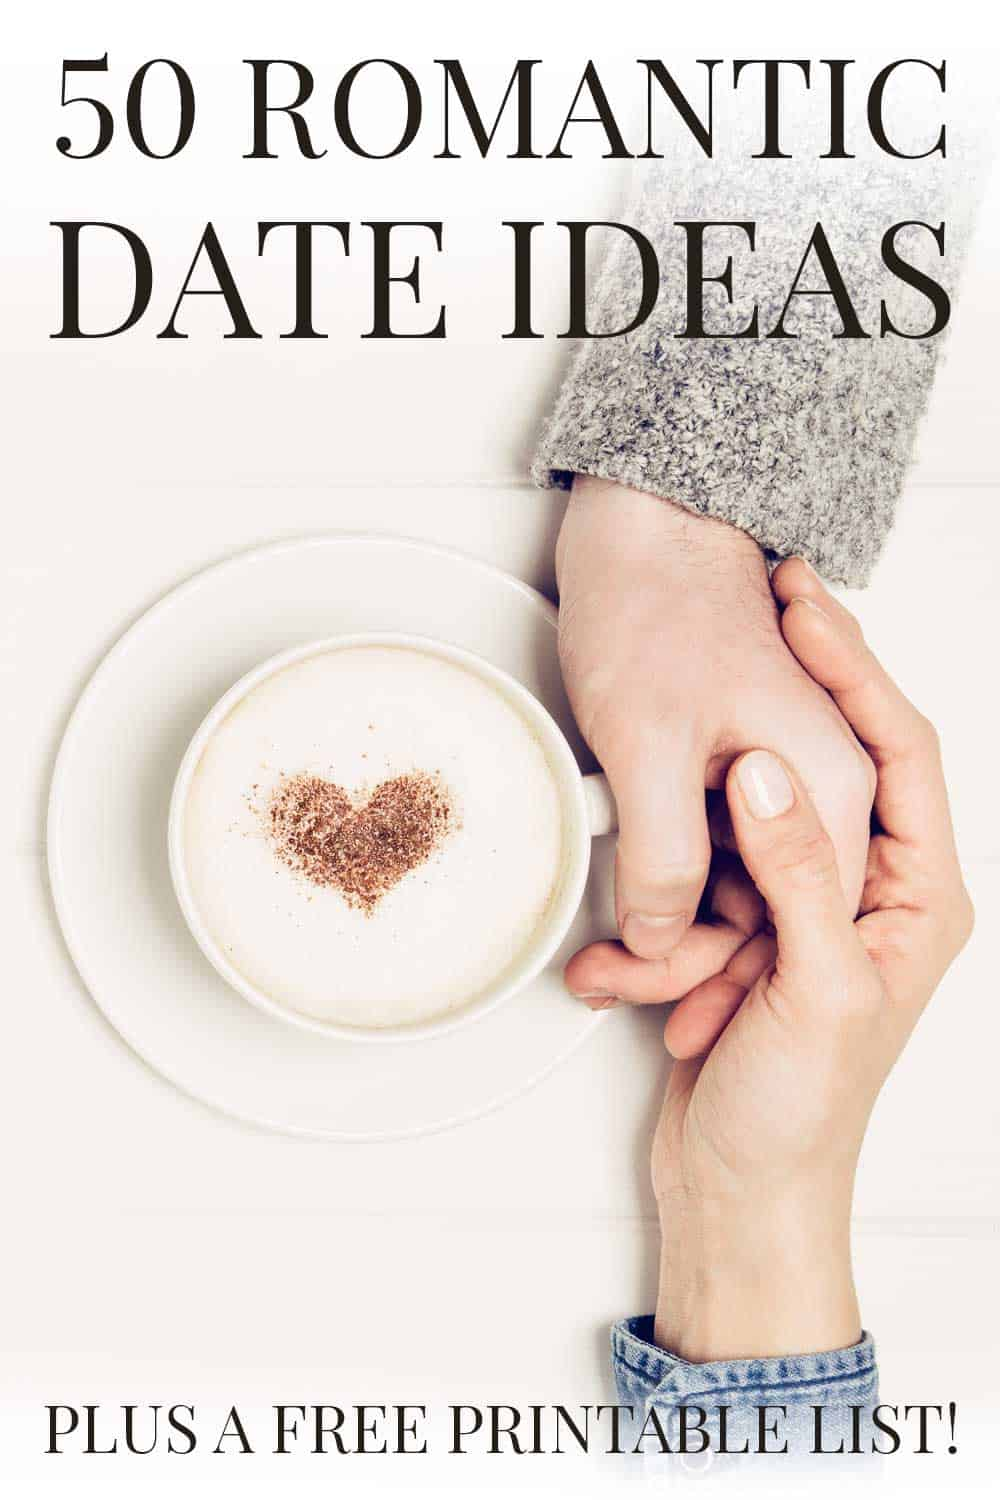 50 Romantic Date Ideas - A Simple List for You!